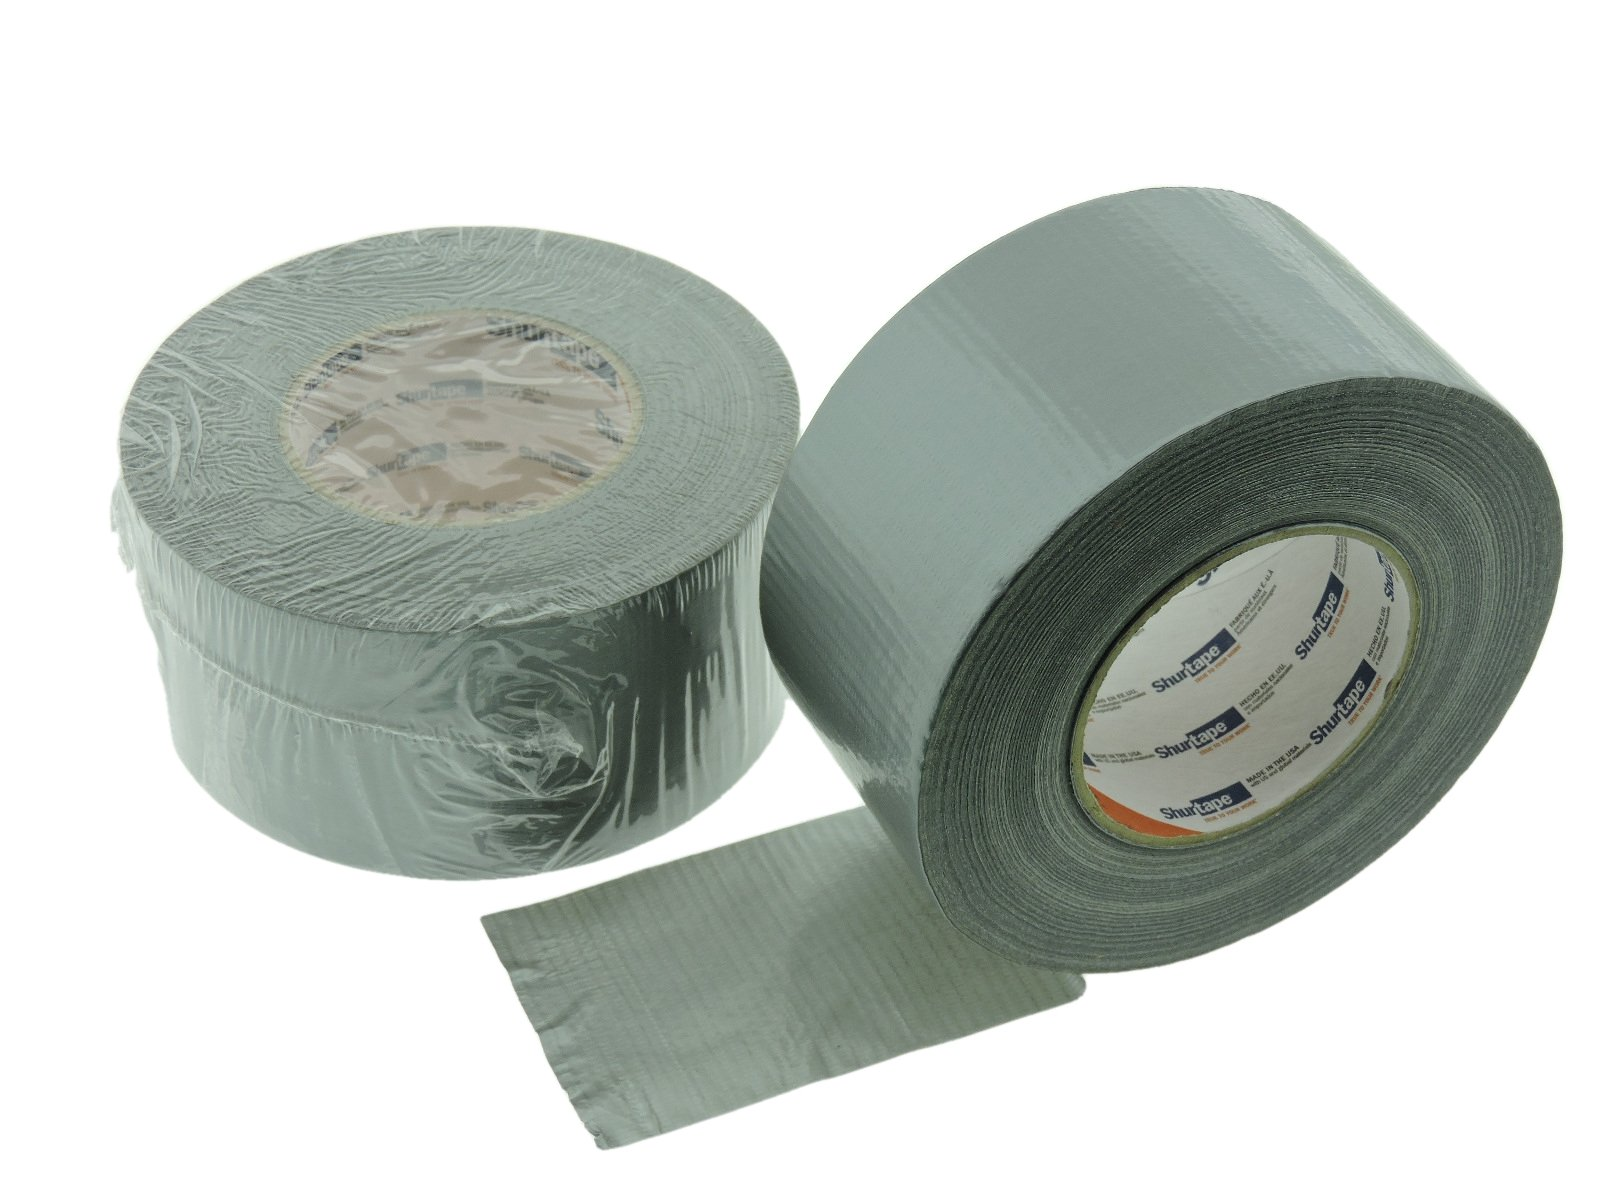 2pk 3'' in Silver Gray Duct Tape ShurTape PC-599 Heavy 9 mil Cloth Reinforced PE Grey Duct Tape Water UV Resistant Hand Tearable 60yd USA Made 50 oz adhesion 16% elongation 22 lb in tensile strength